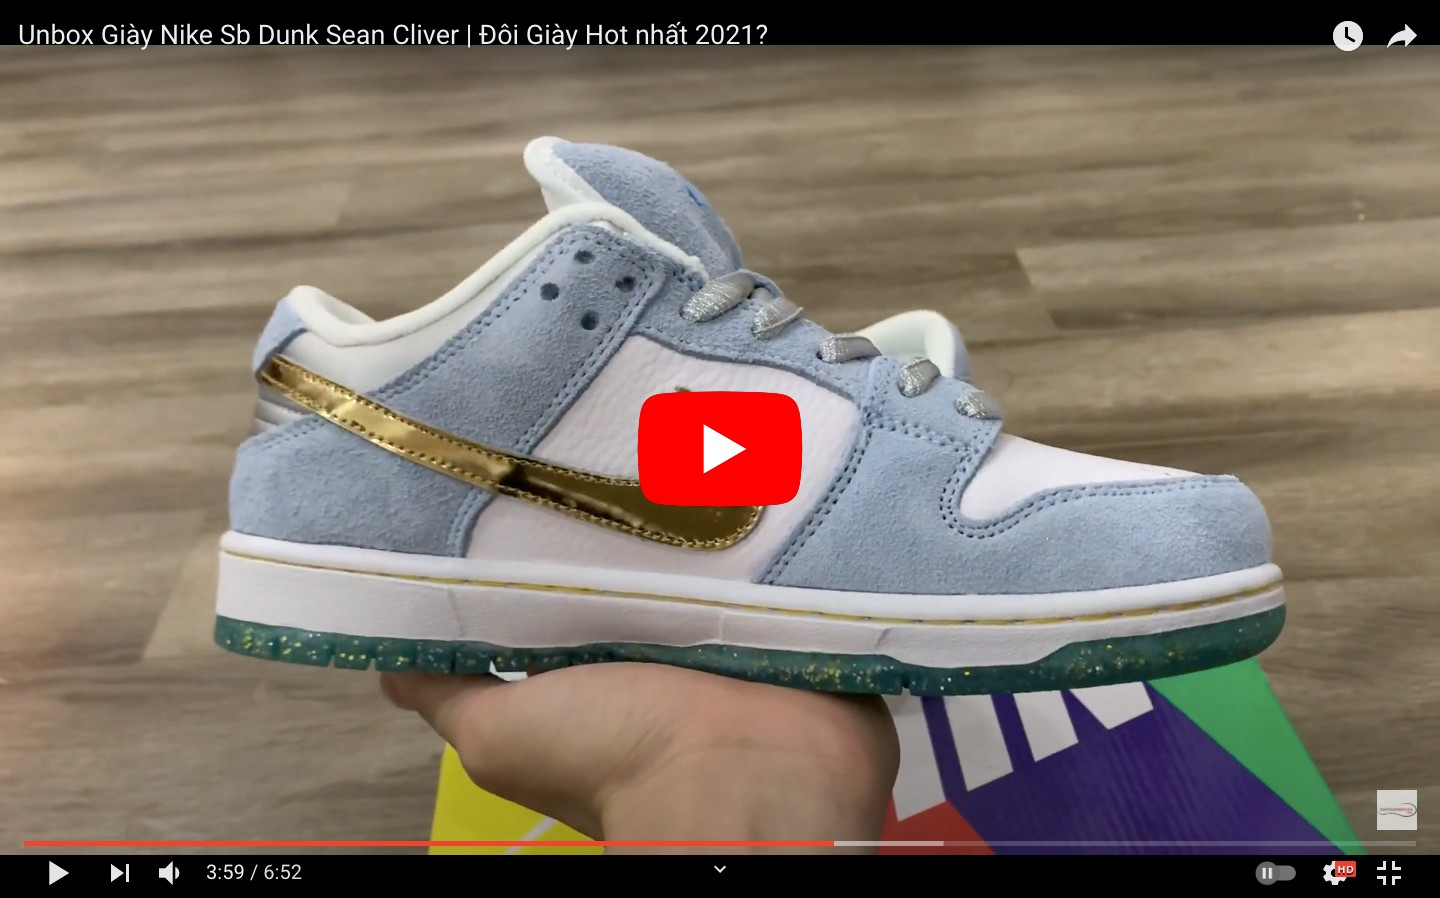 VIDEO NIKE SB DUNK SEAN CLIVER replica